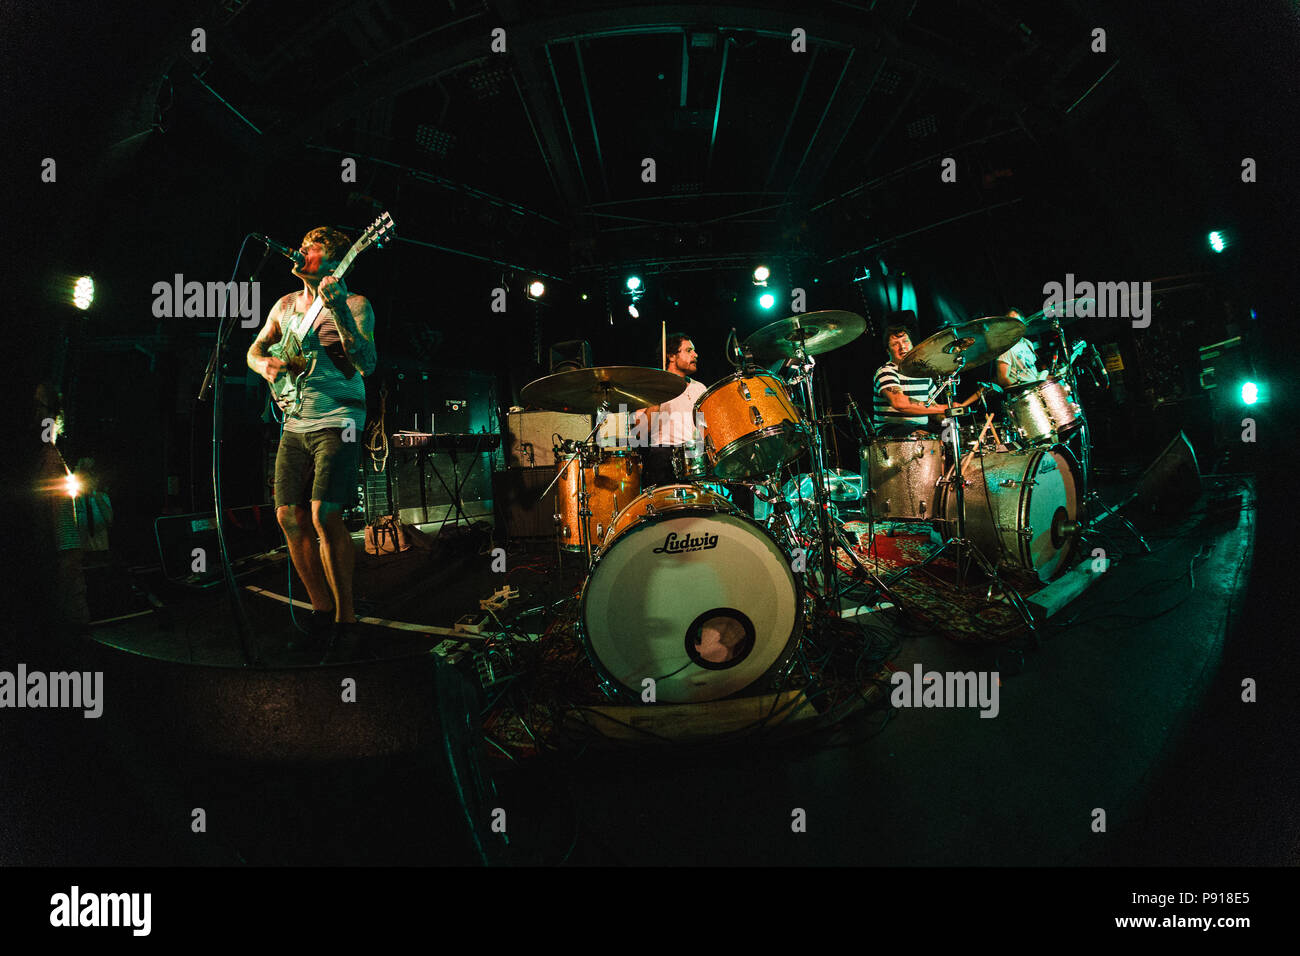 Cambridge, UK. 13th July 2018. The Oh Sees live at The Junction, Cambridge, UK. Richard Etteridge / Alamy Live News - Stock Image